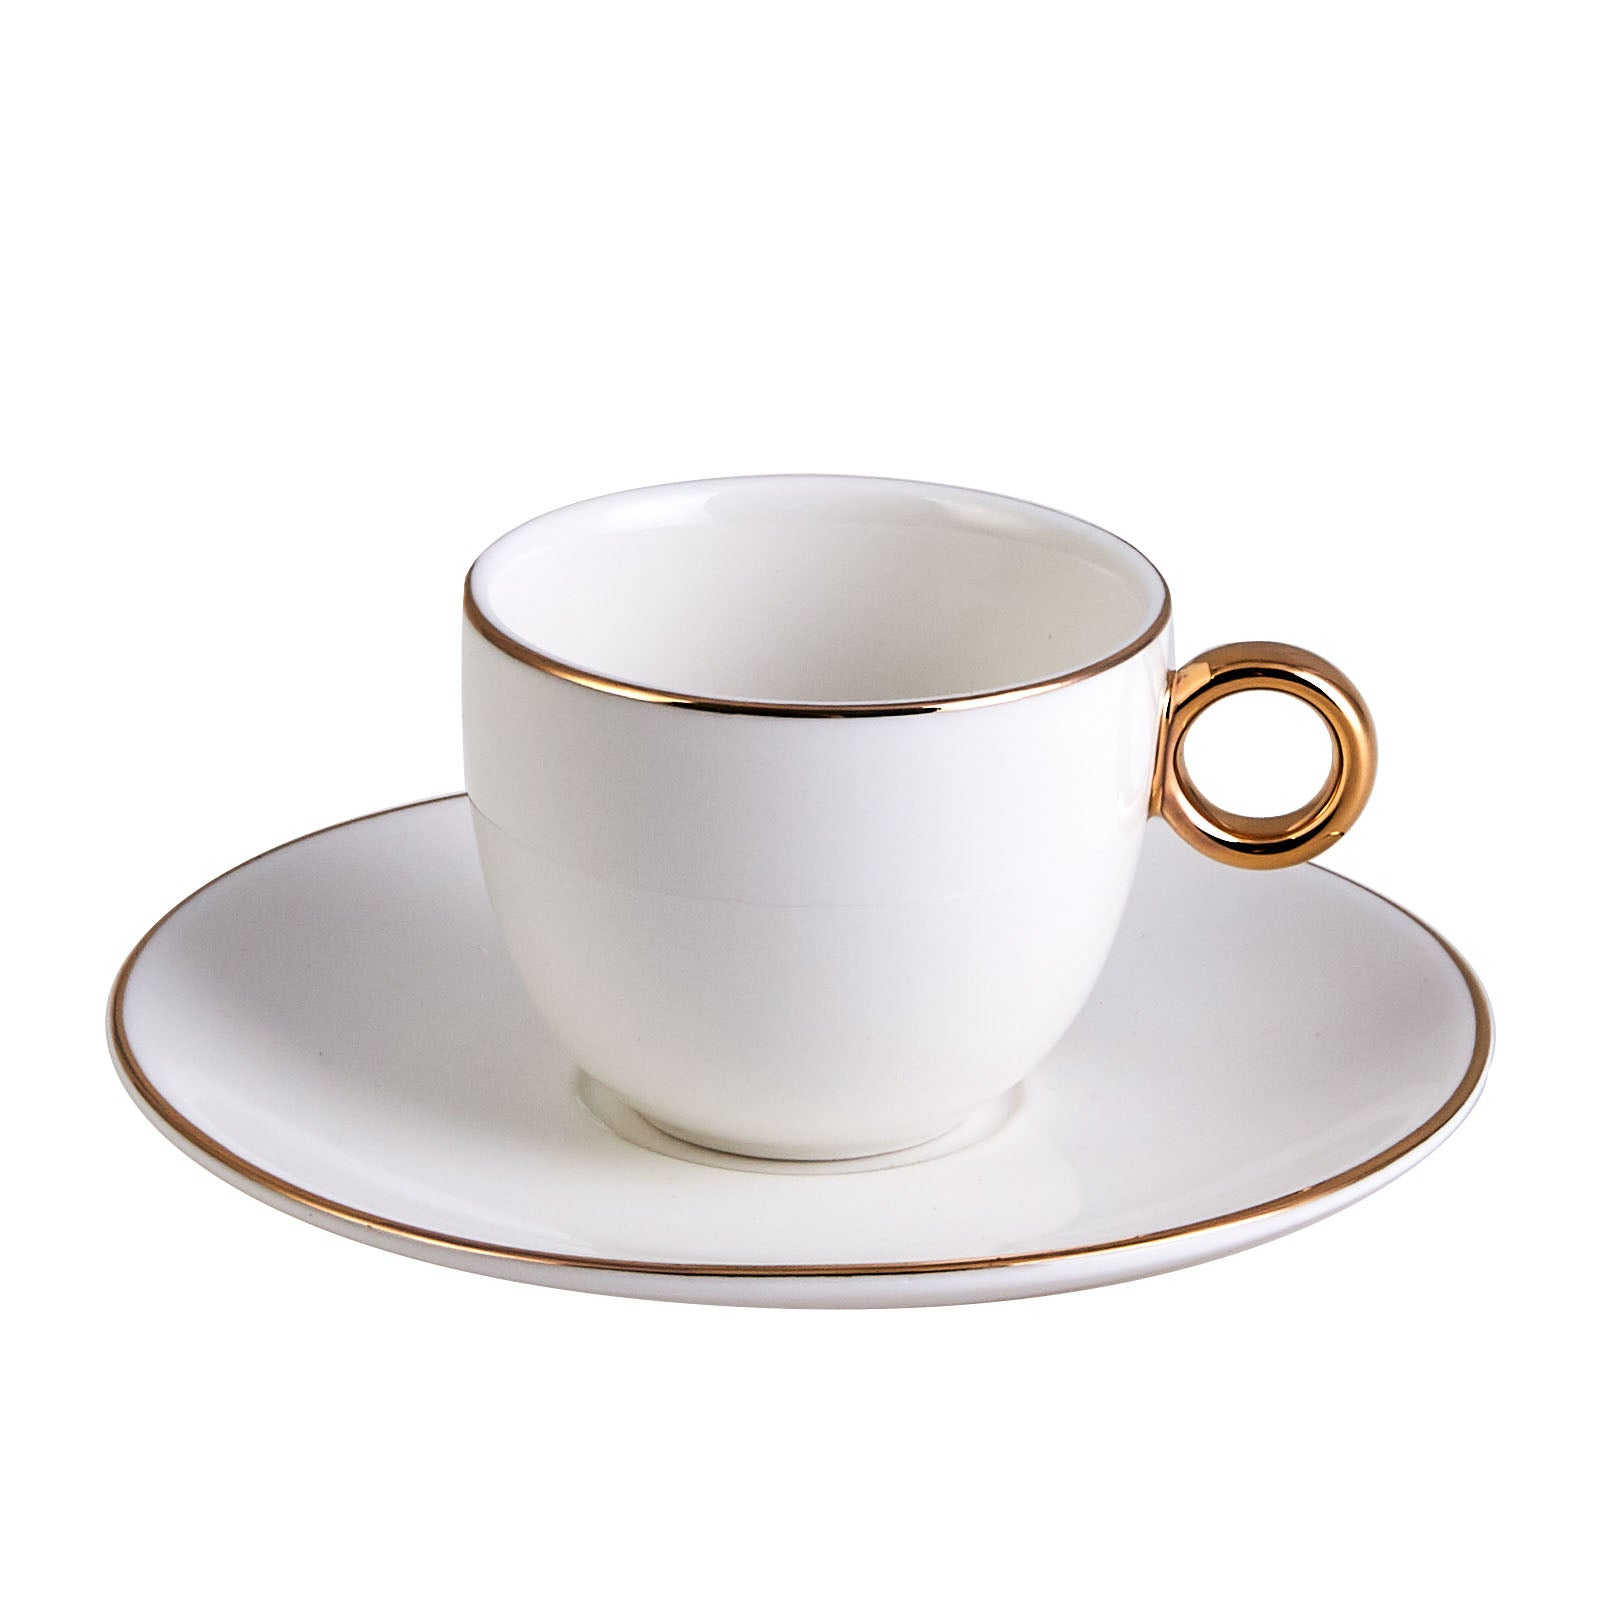 Ring 6 Person Coffee Cup Set 153.03.07.9255 -  طقم فناجين قهوة 6 أشخاص - Shop Online Furniture and Home Decor Store in Dubai, UAE at ebarza